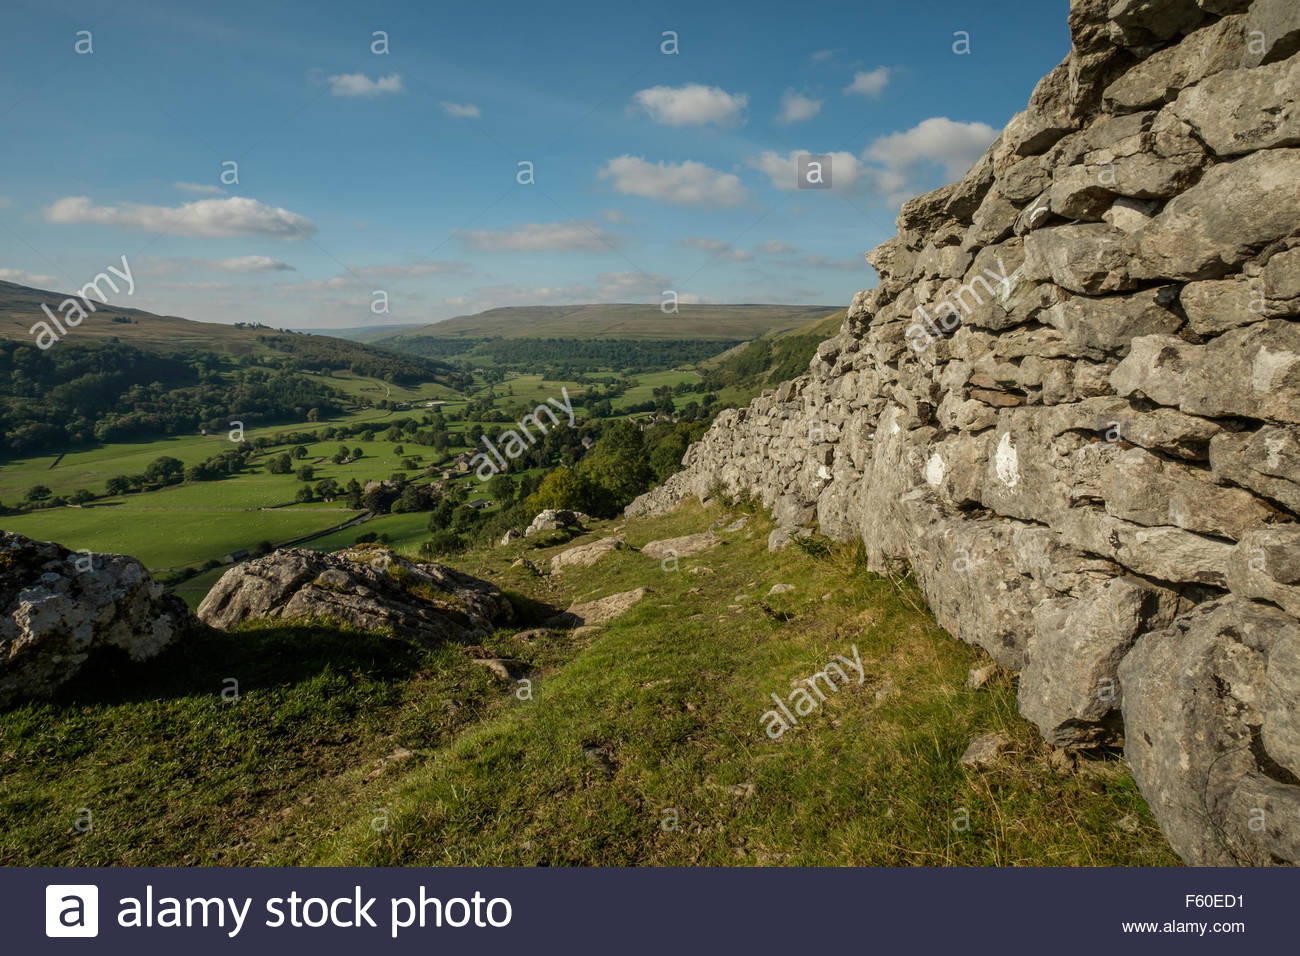 View over the village of Buckden, Wharfdale in the Yorkshire Dales, England on a sunny day in Autumn. Langstrothdale - Stock Image